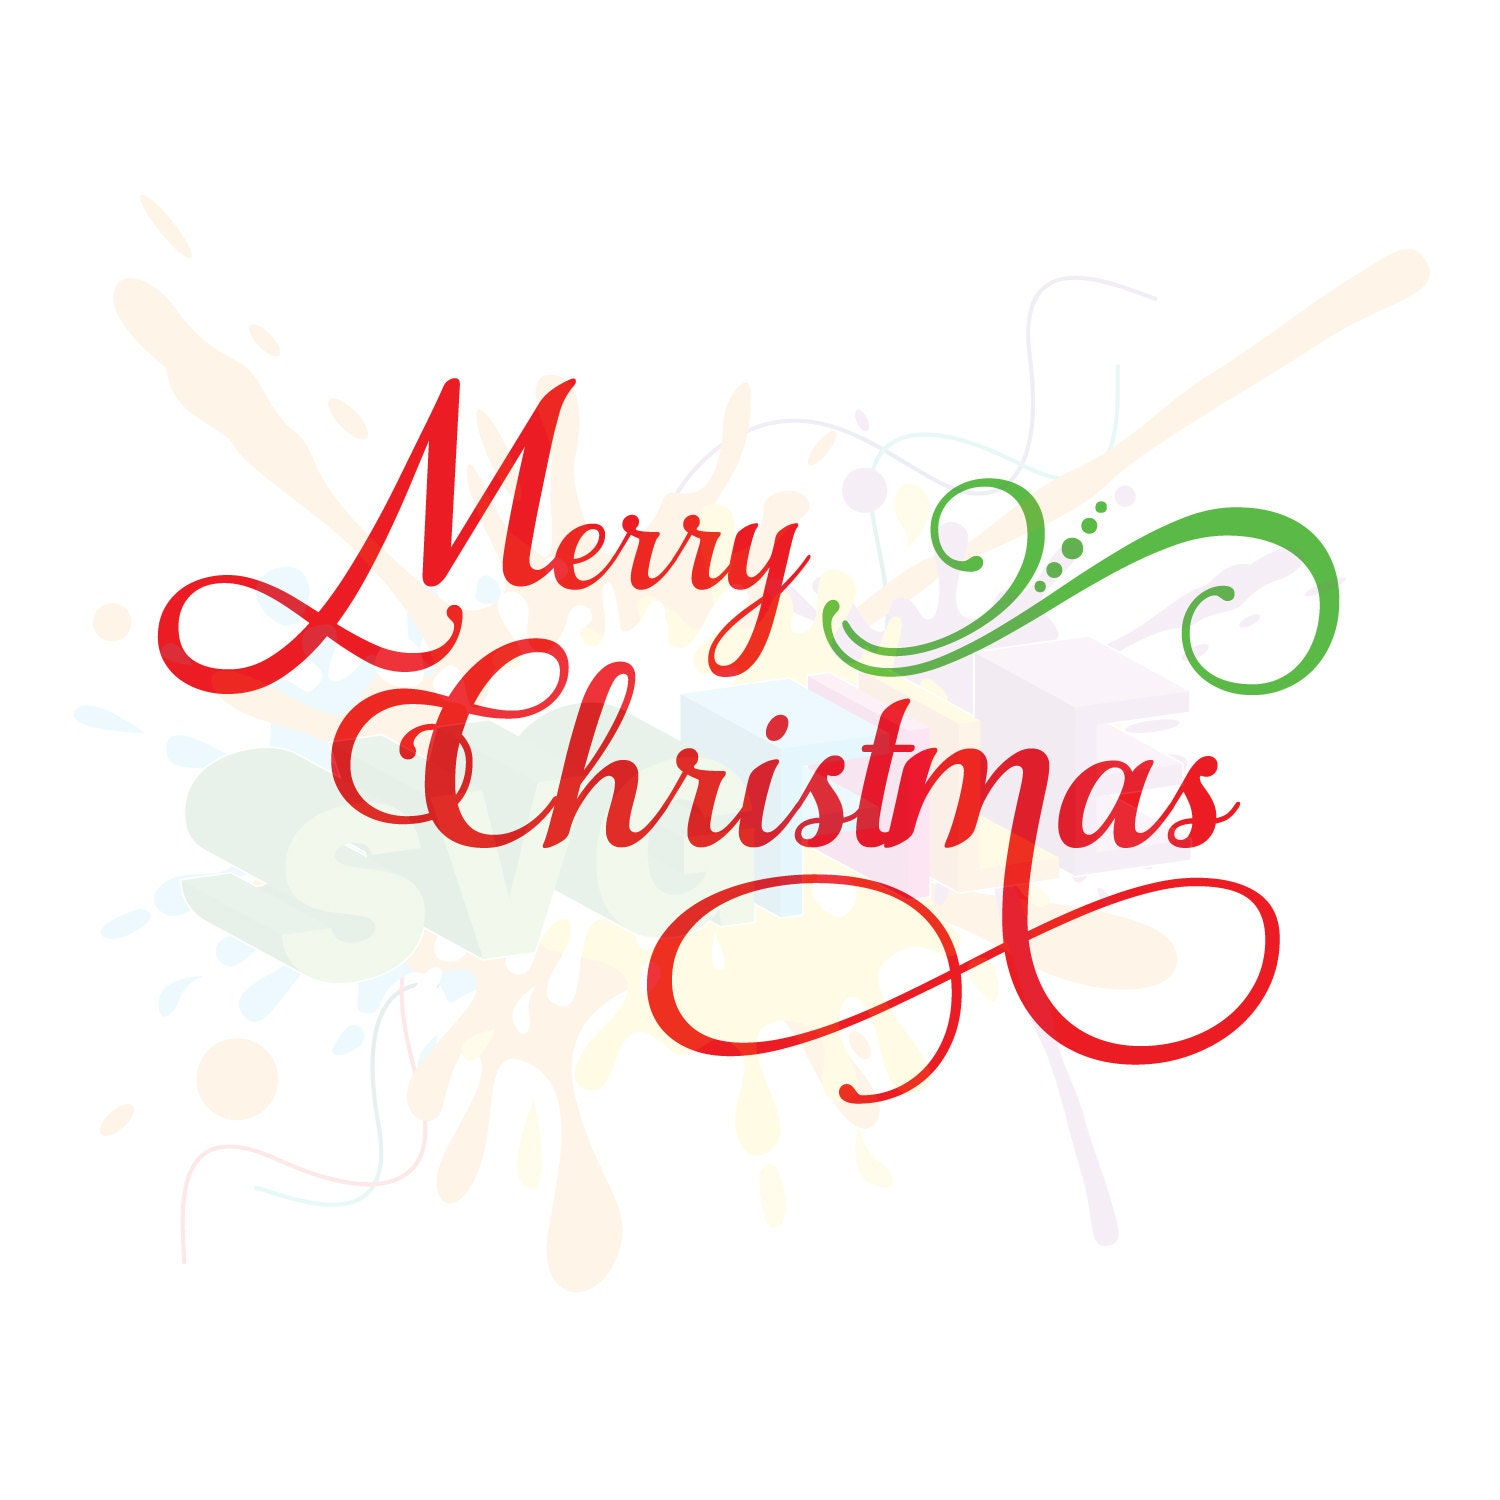 Download Merry Christmas SVG Files for Cutting Cricut Holiday Quotes